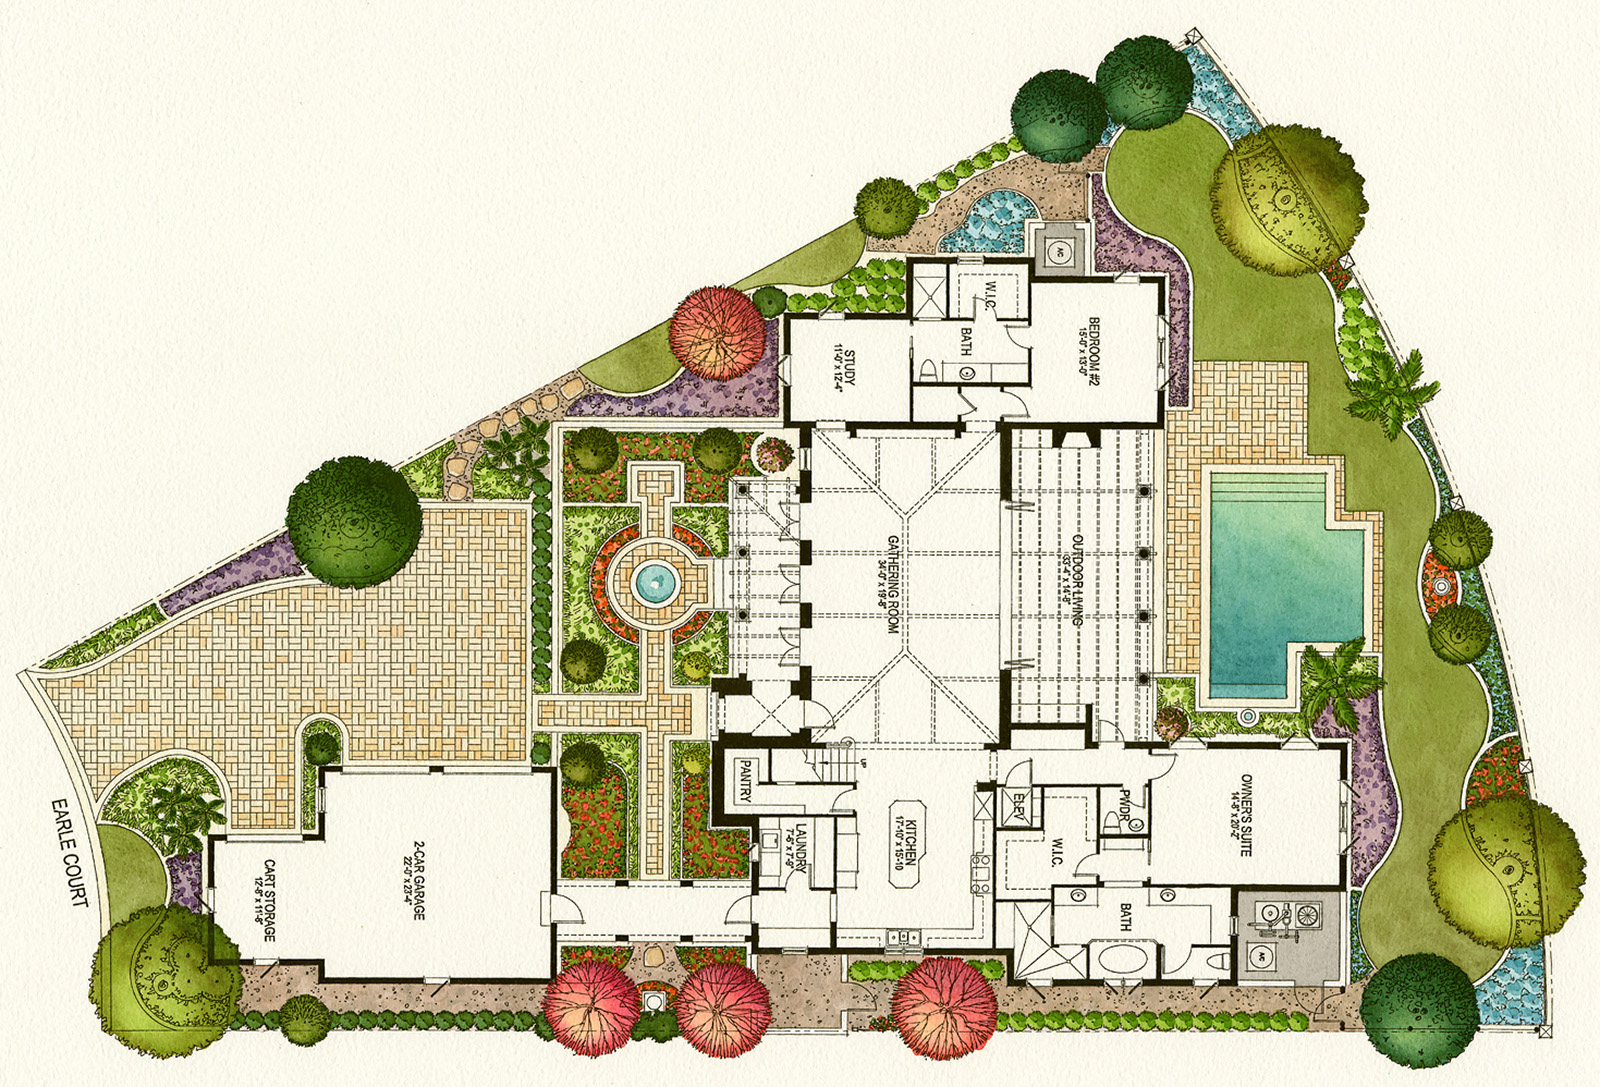 Watercolor Floor Plan at GetDrawings com | Free for personal